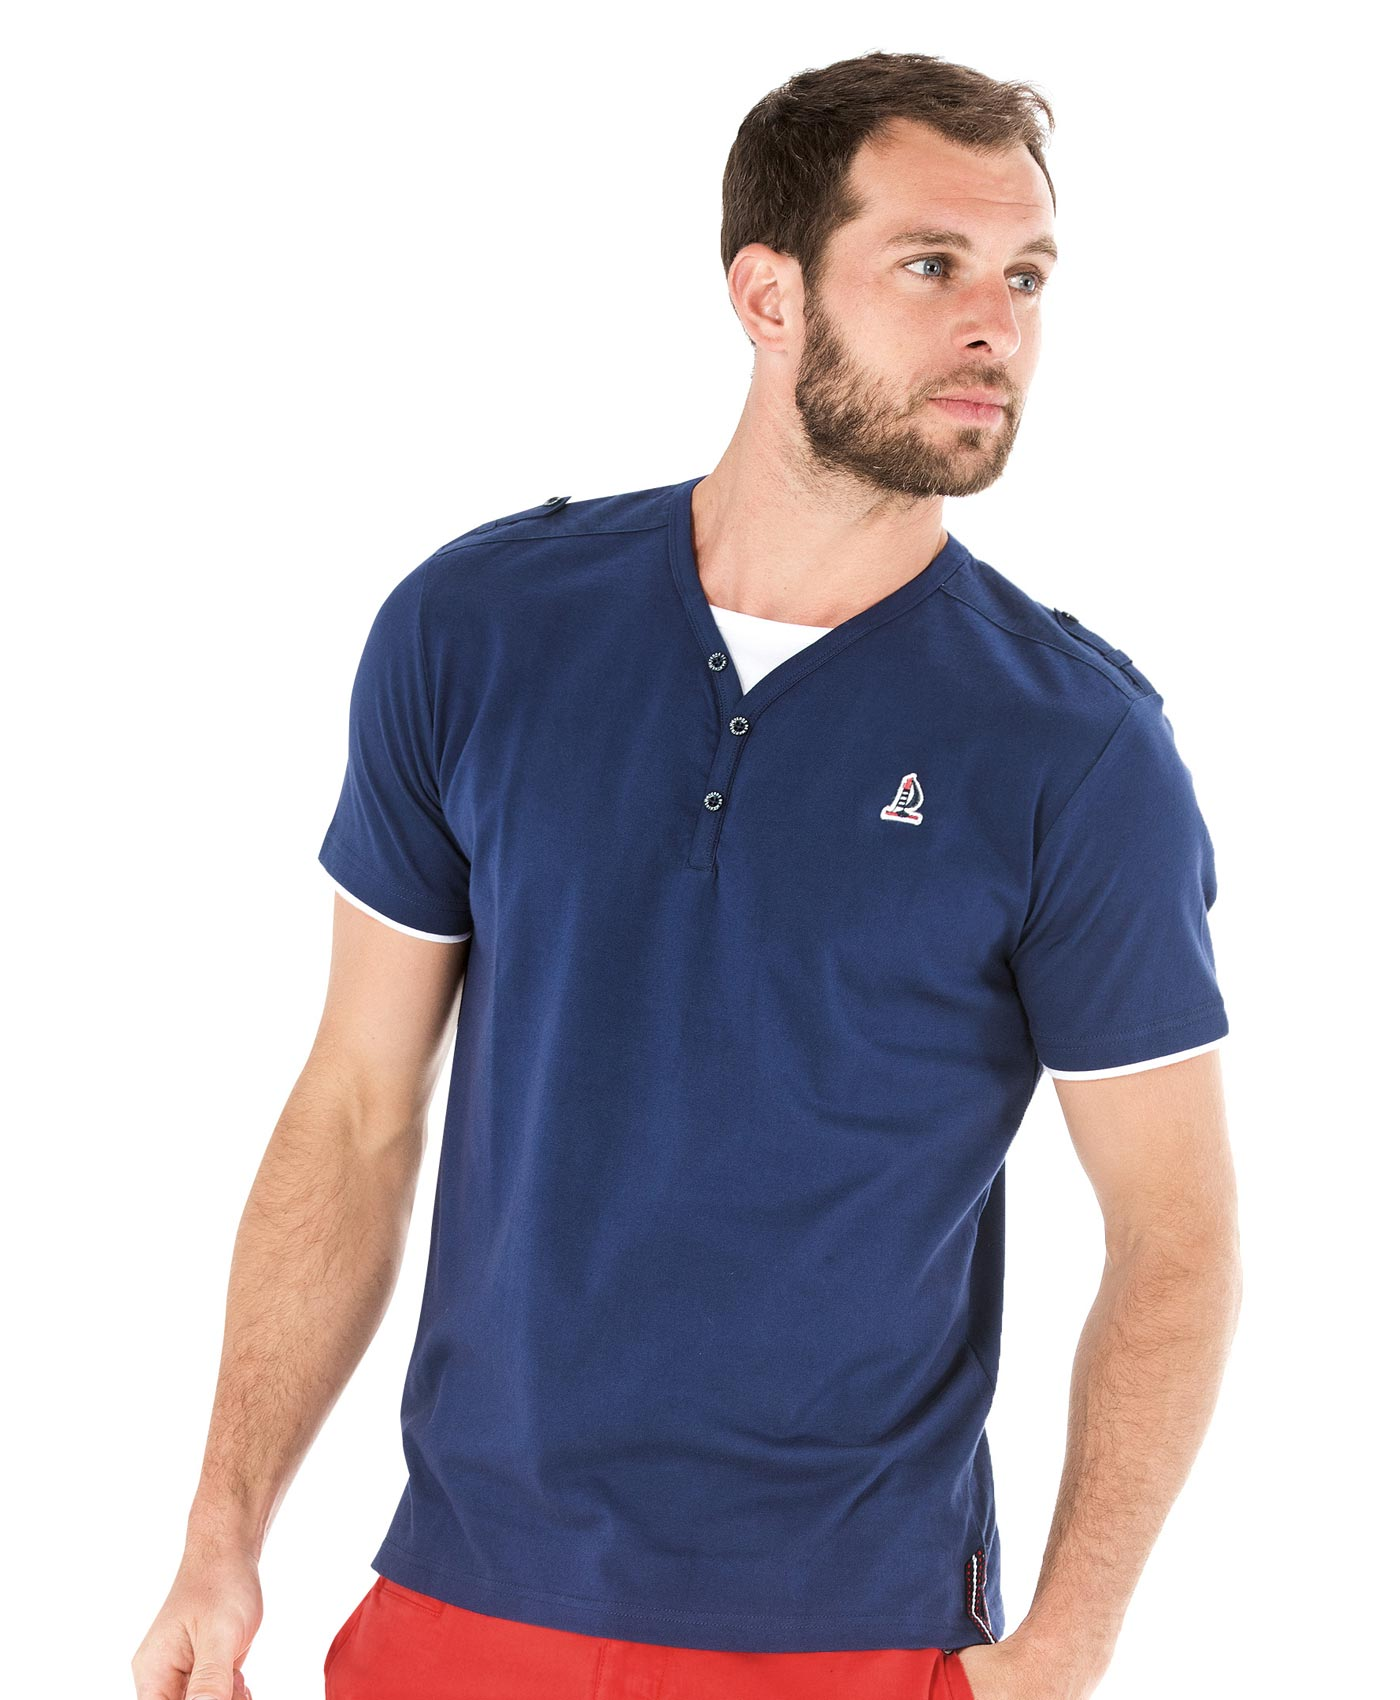 Tee-shirt manches courtes homme bleu encre - Mode marine Homme